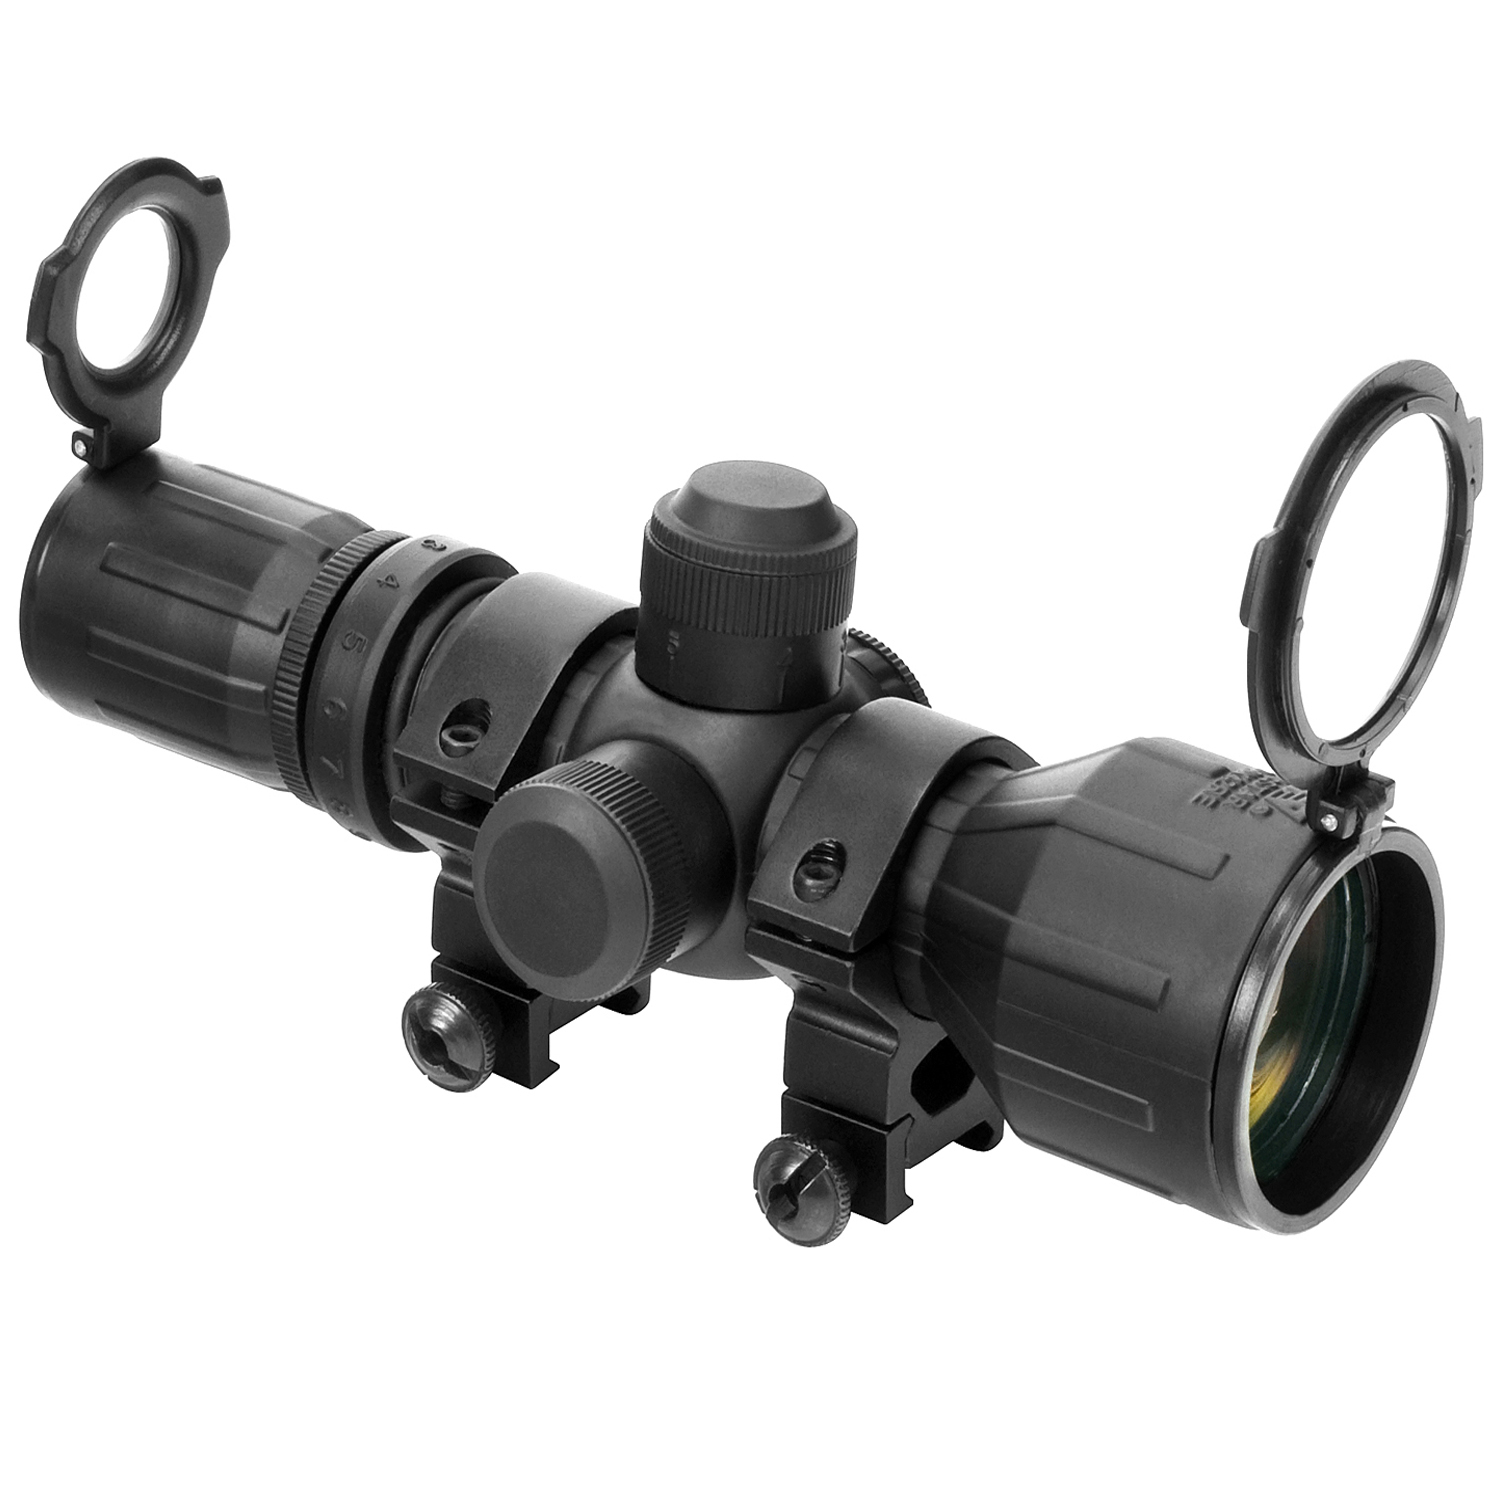 Ncstar Compact Red/Green Illuminated 3X9x42 Rubber Coated Scope